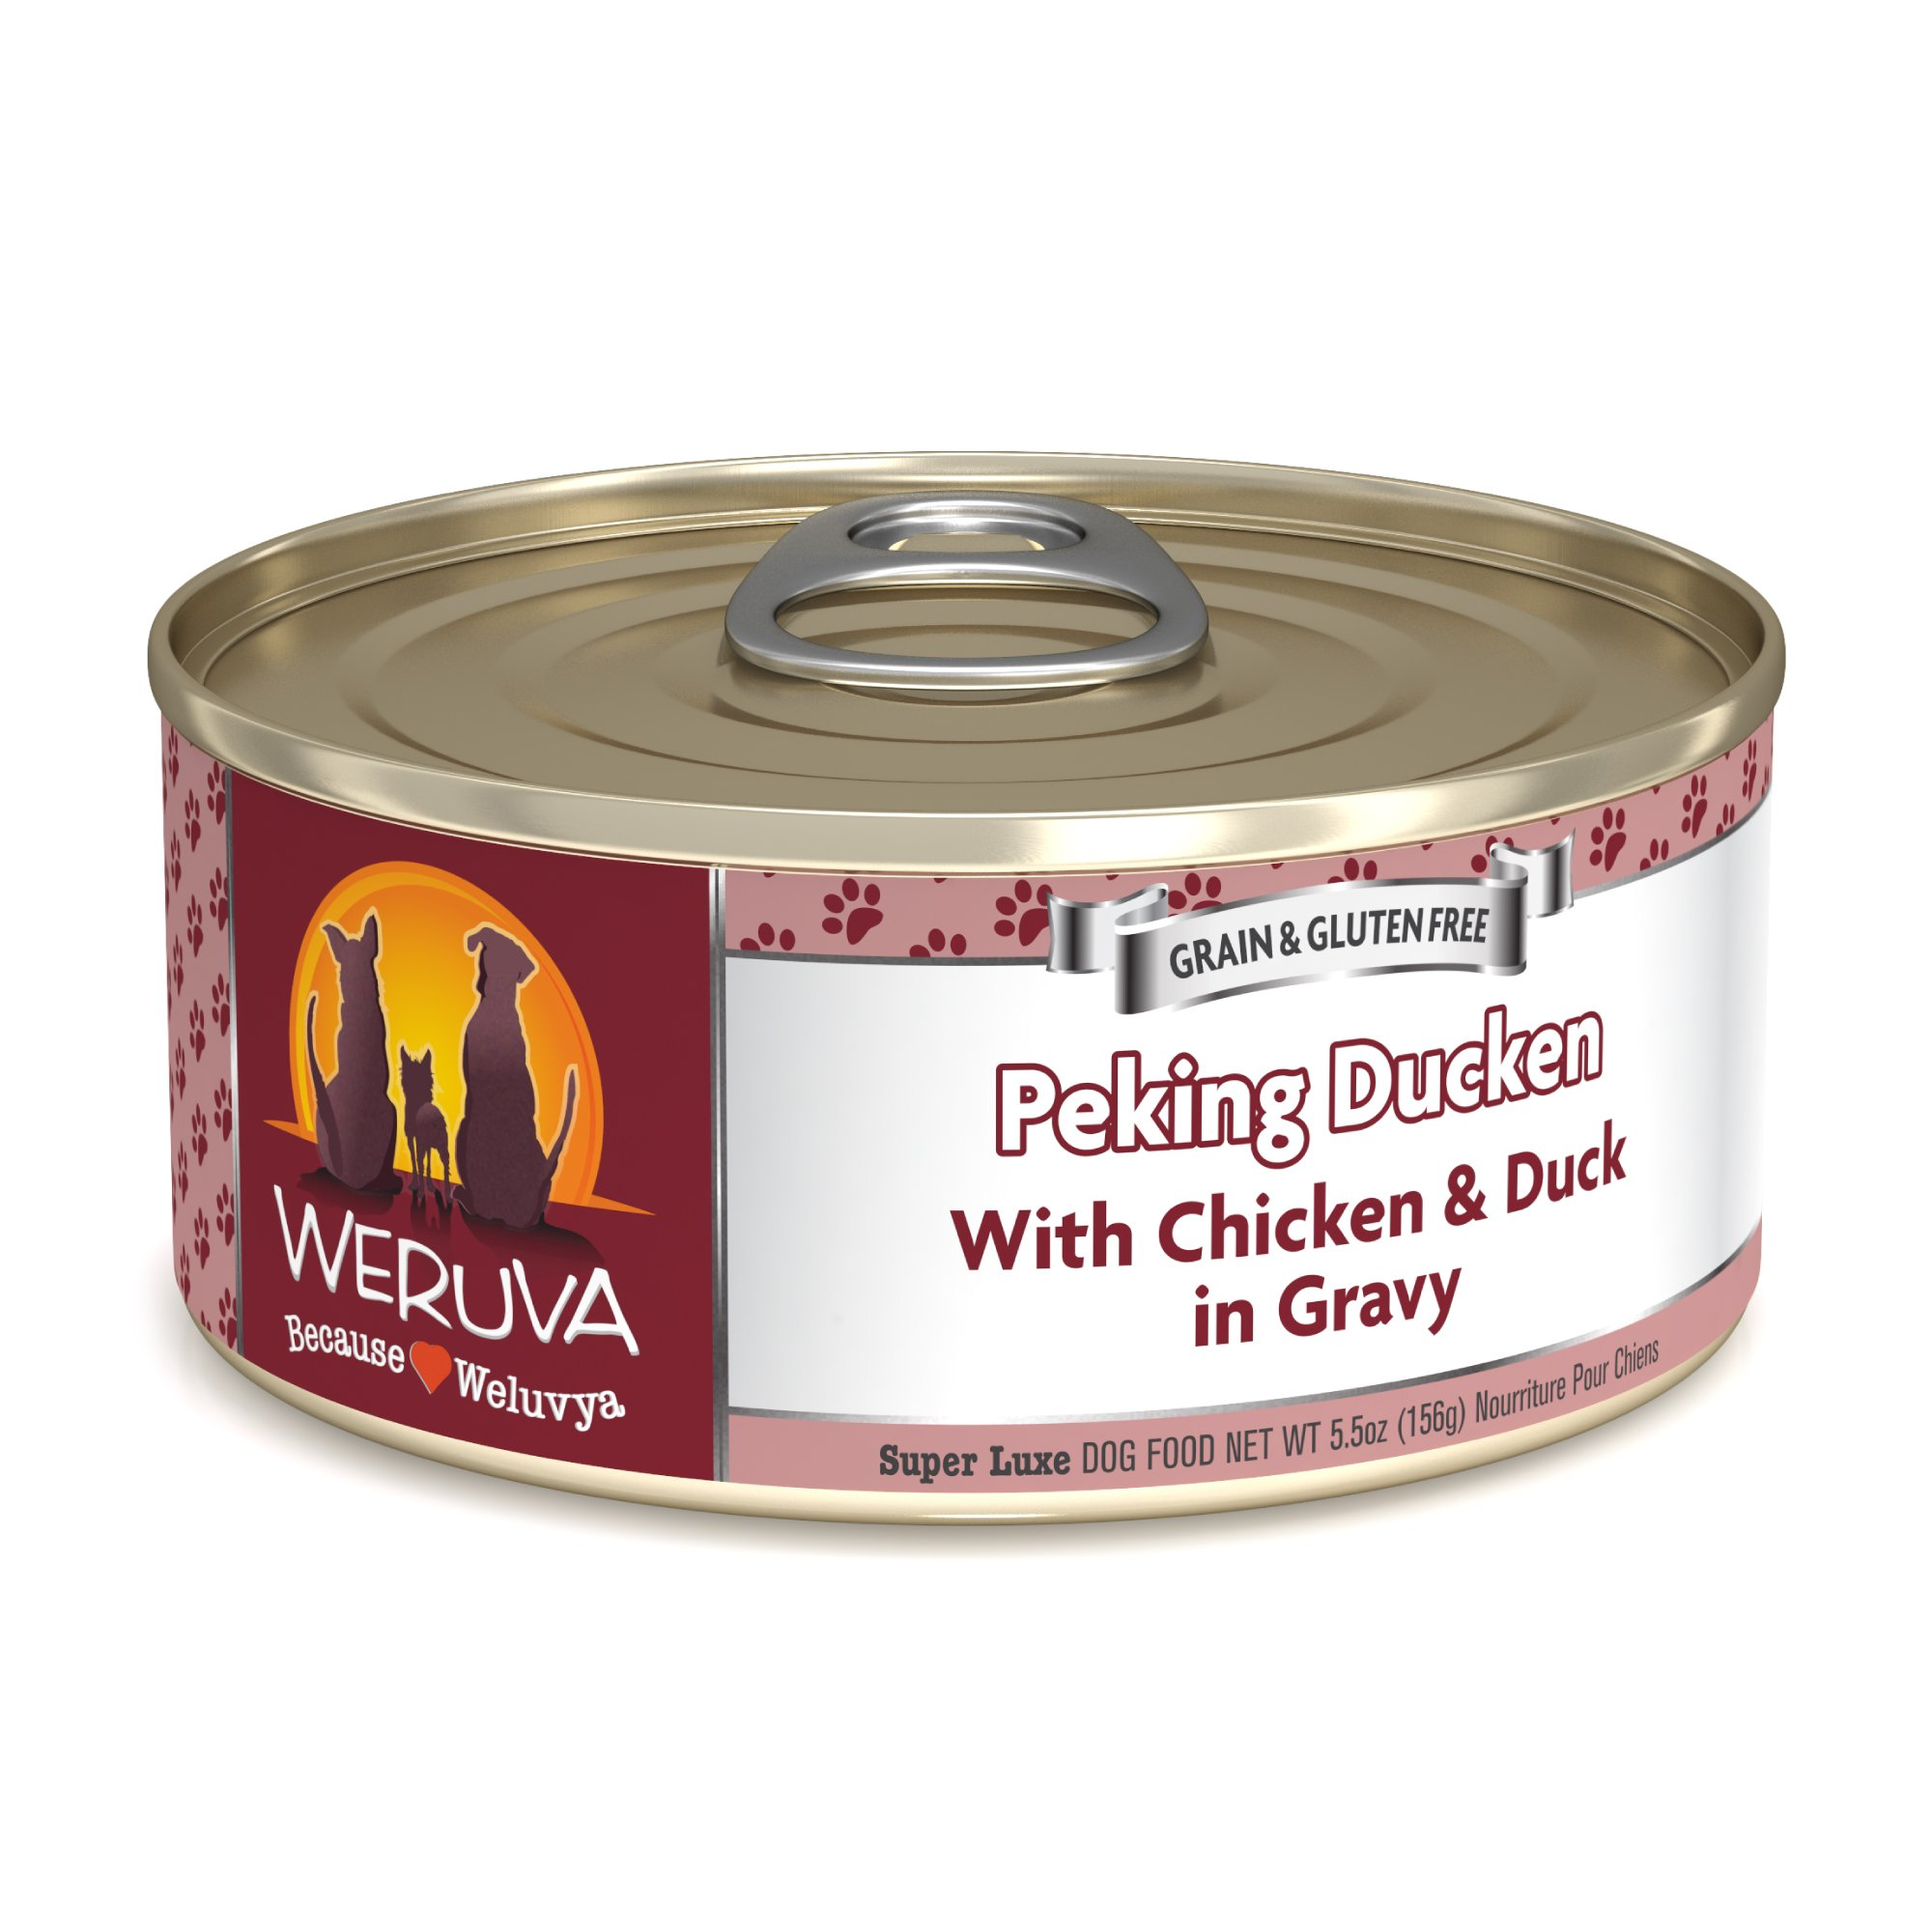 Weruva Classics Peking Ducken with Chicken & Duck in Gravy Wet Dog Food, 5.5 oz., Case of 24, 24 X 5.5 OZ